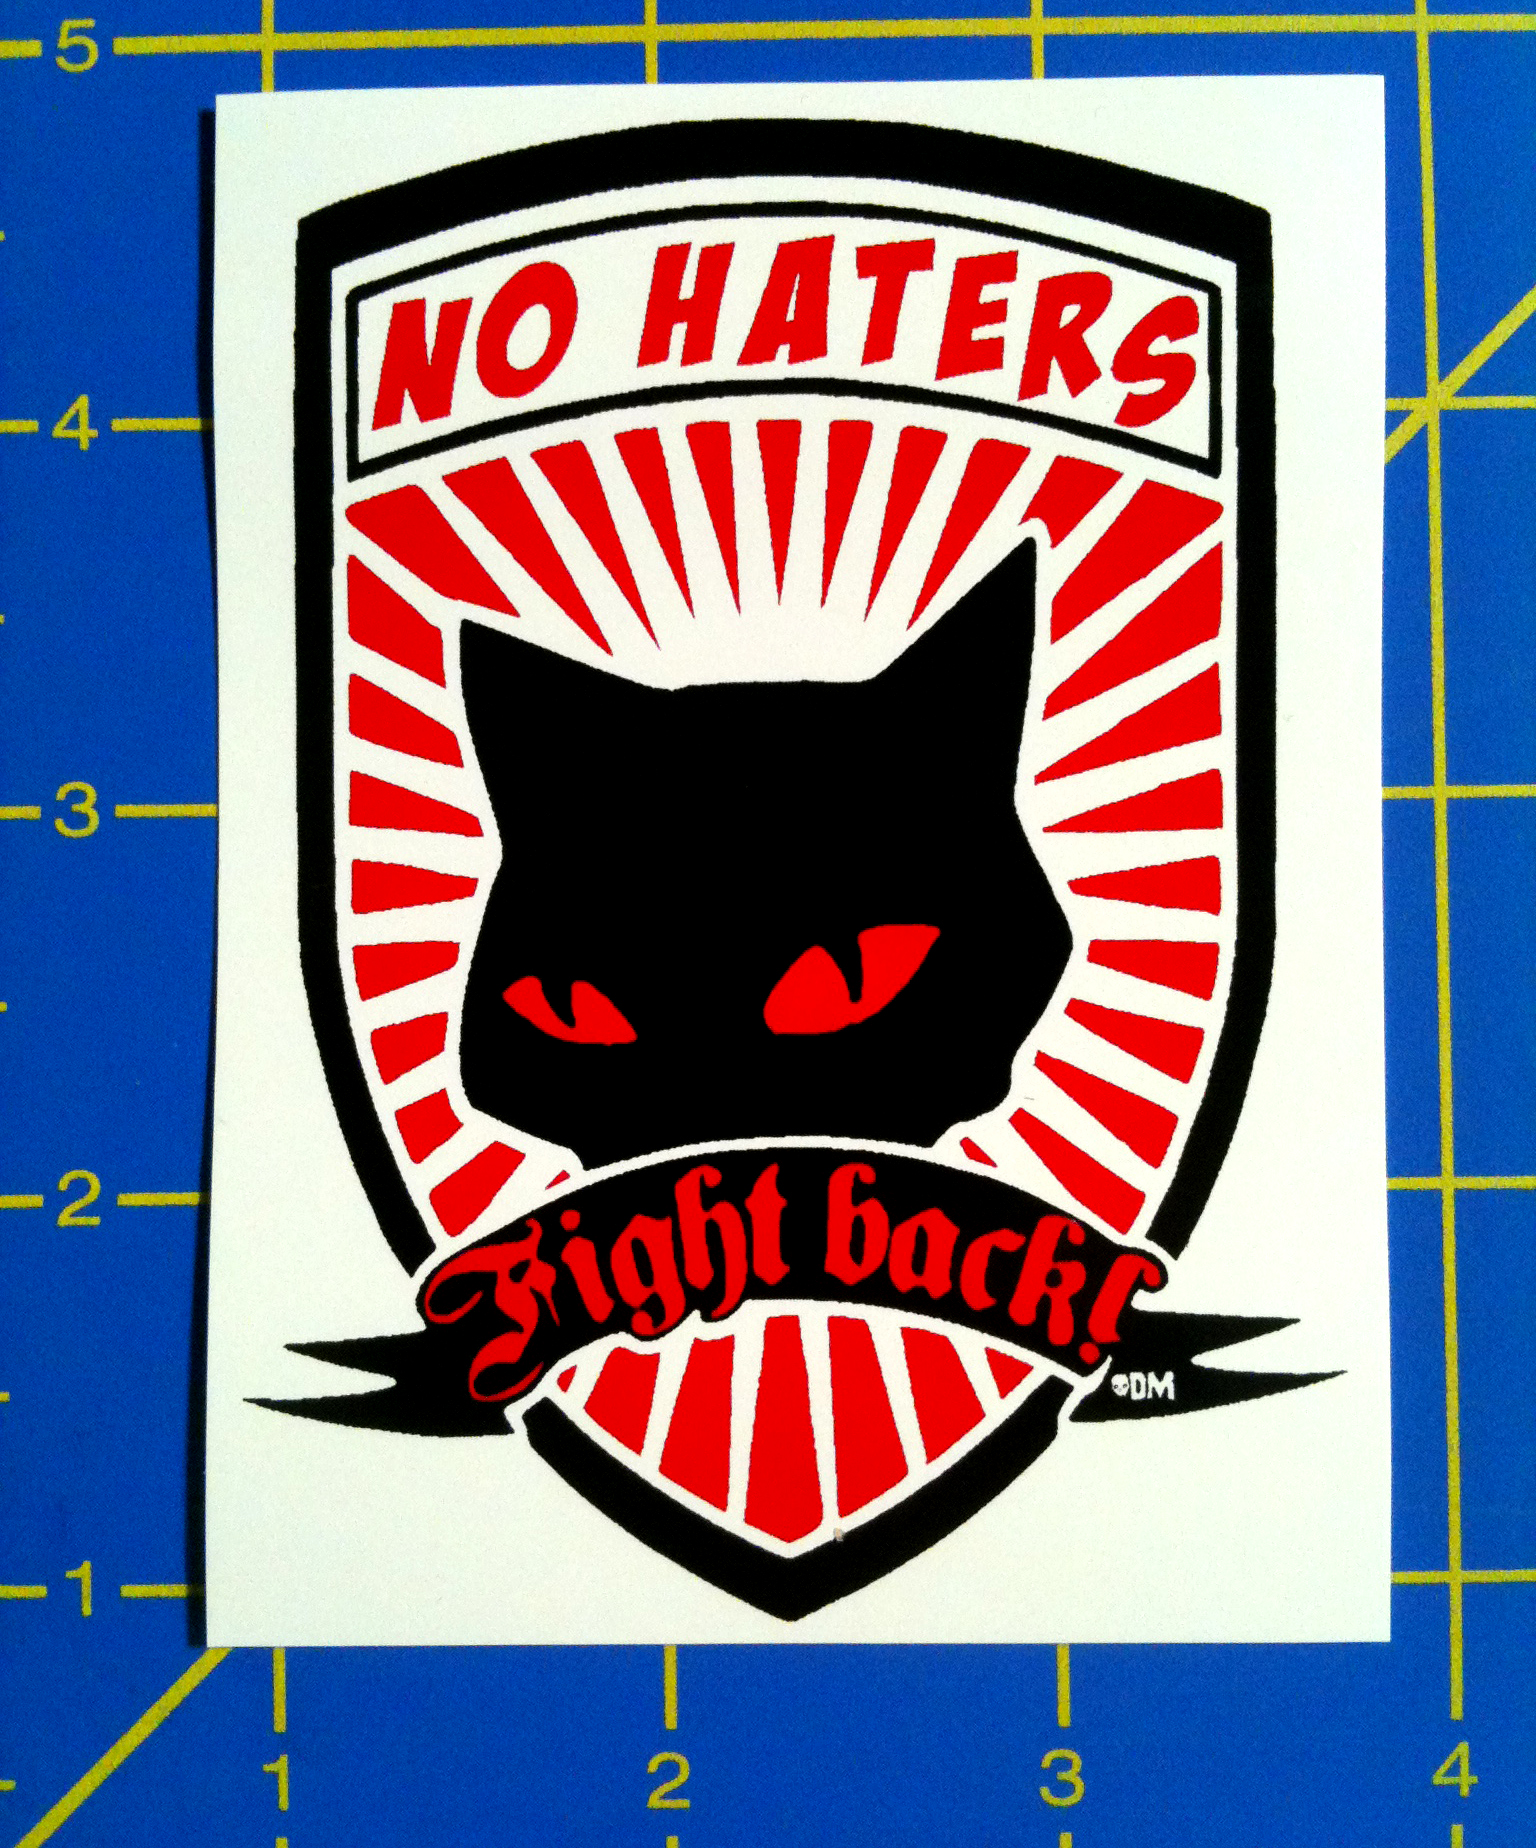 No Haters Fight Back - Red and Black Cat Anti-Racist AntiFa Vinyl Sticker  from Populous Ephemera